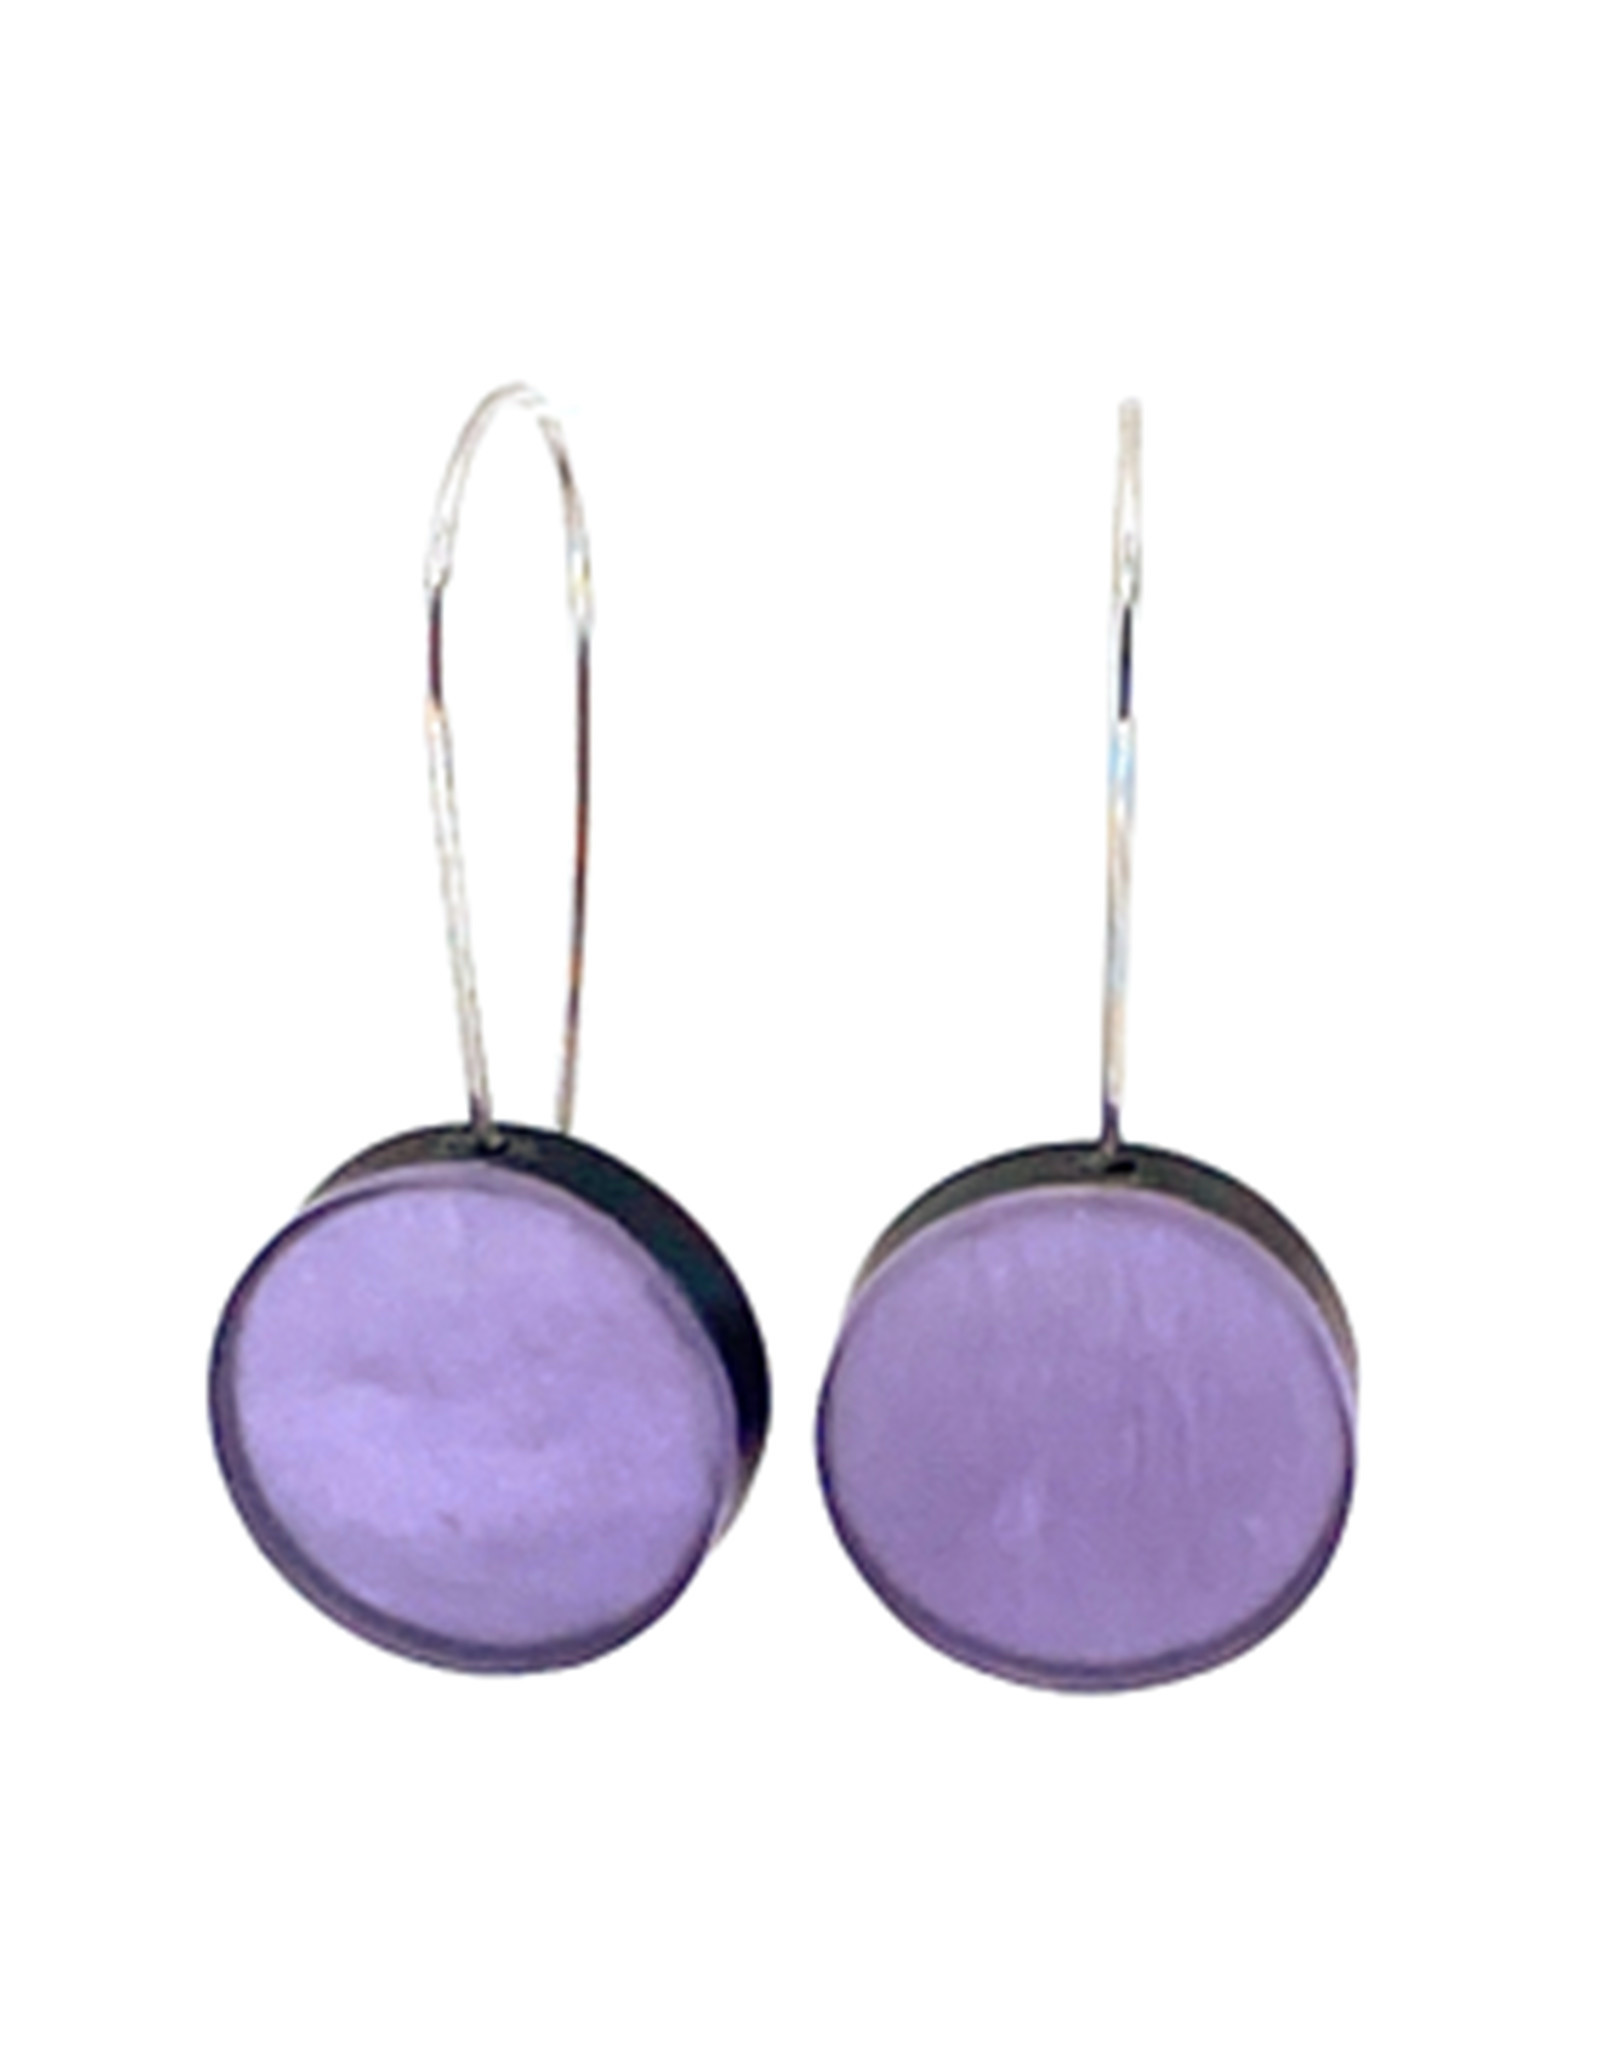 ORIGIN JEWELRY LAVENDER DISK EARRINGS